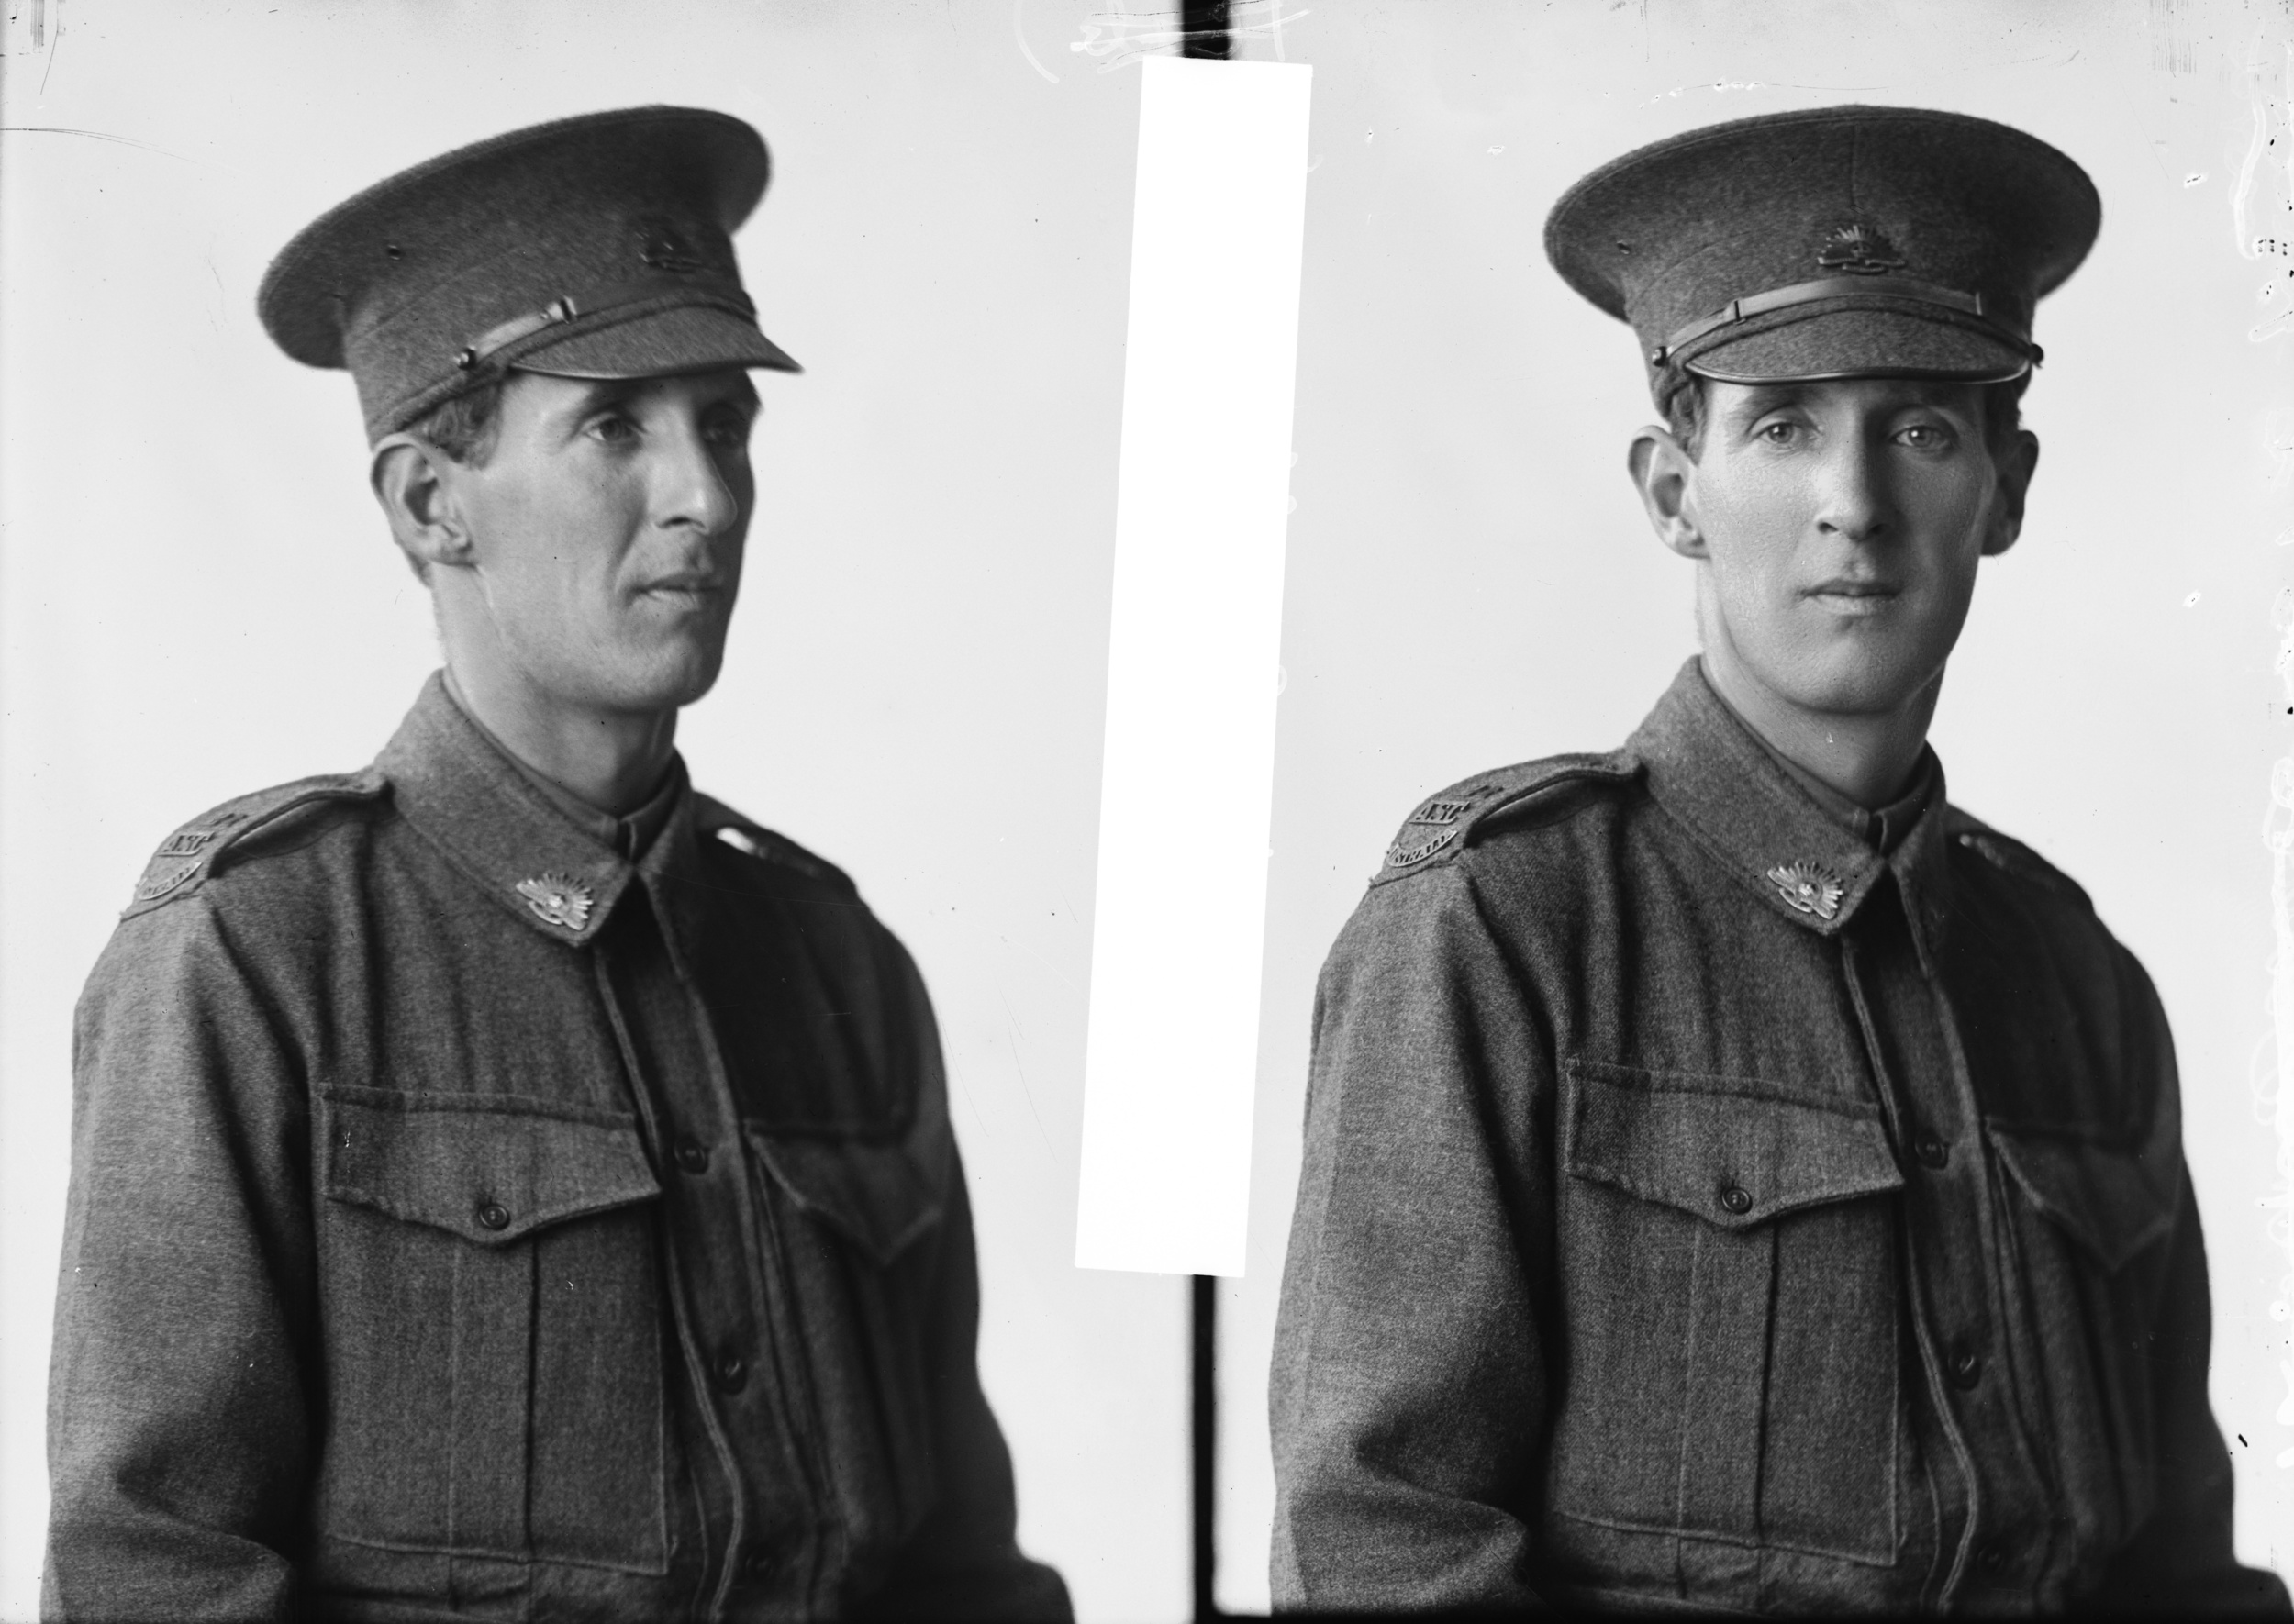 Photographed at the Dease Studio, 117 Barrack Street Perth WA Image courtesy of the State Library of Western Australia: 108468PD